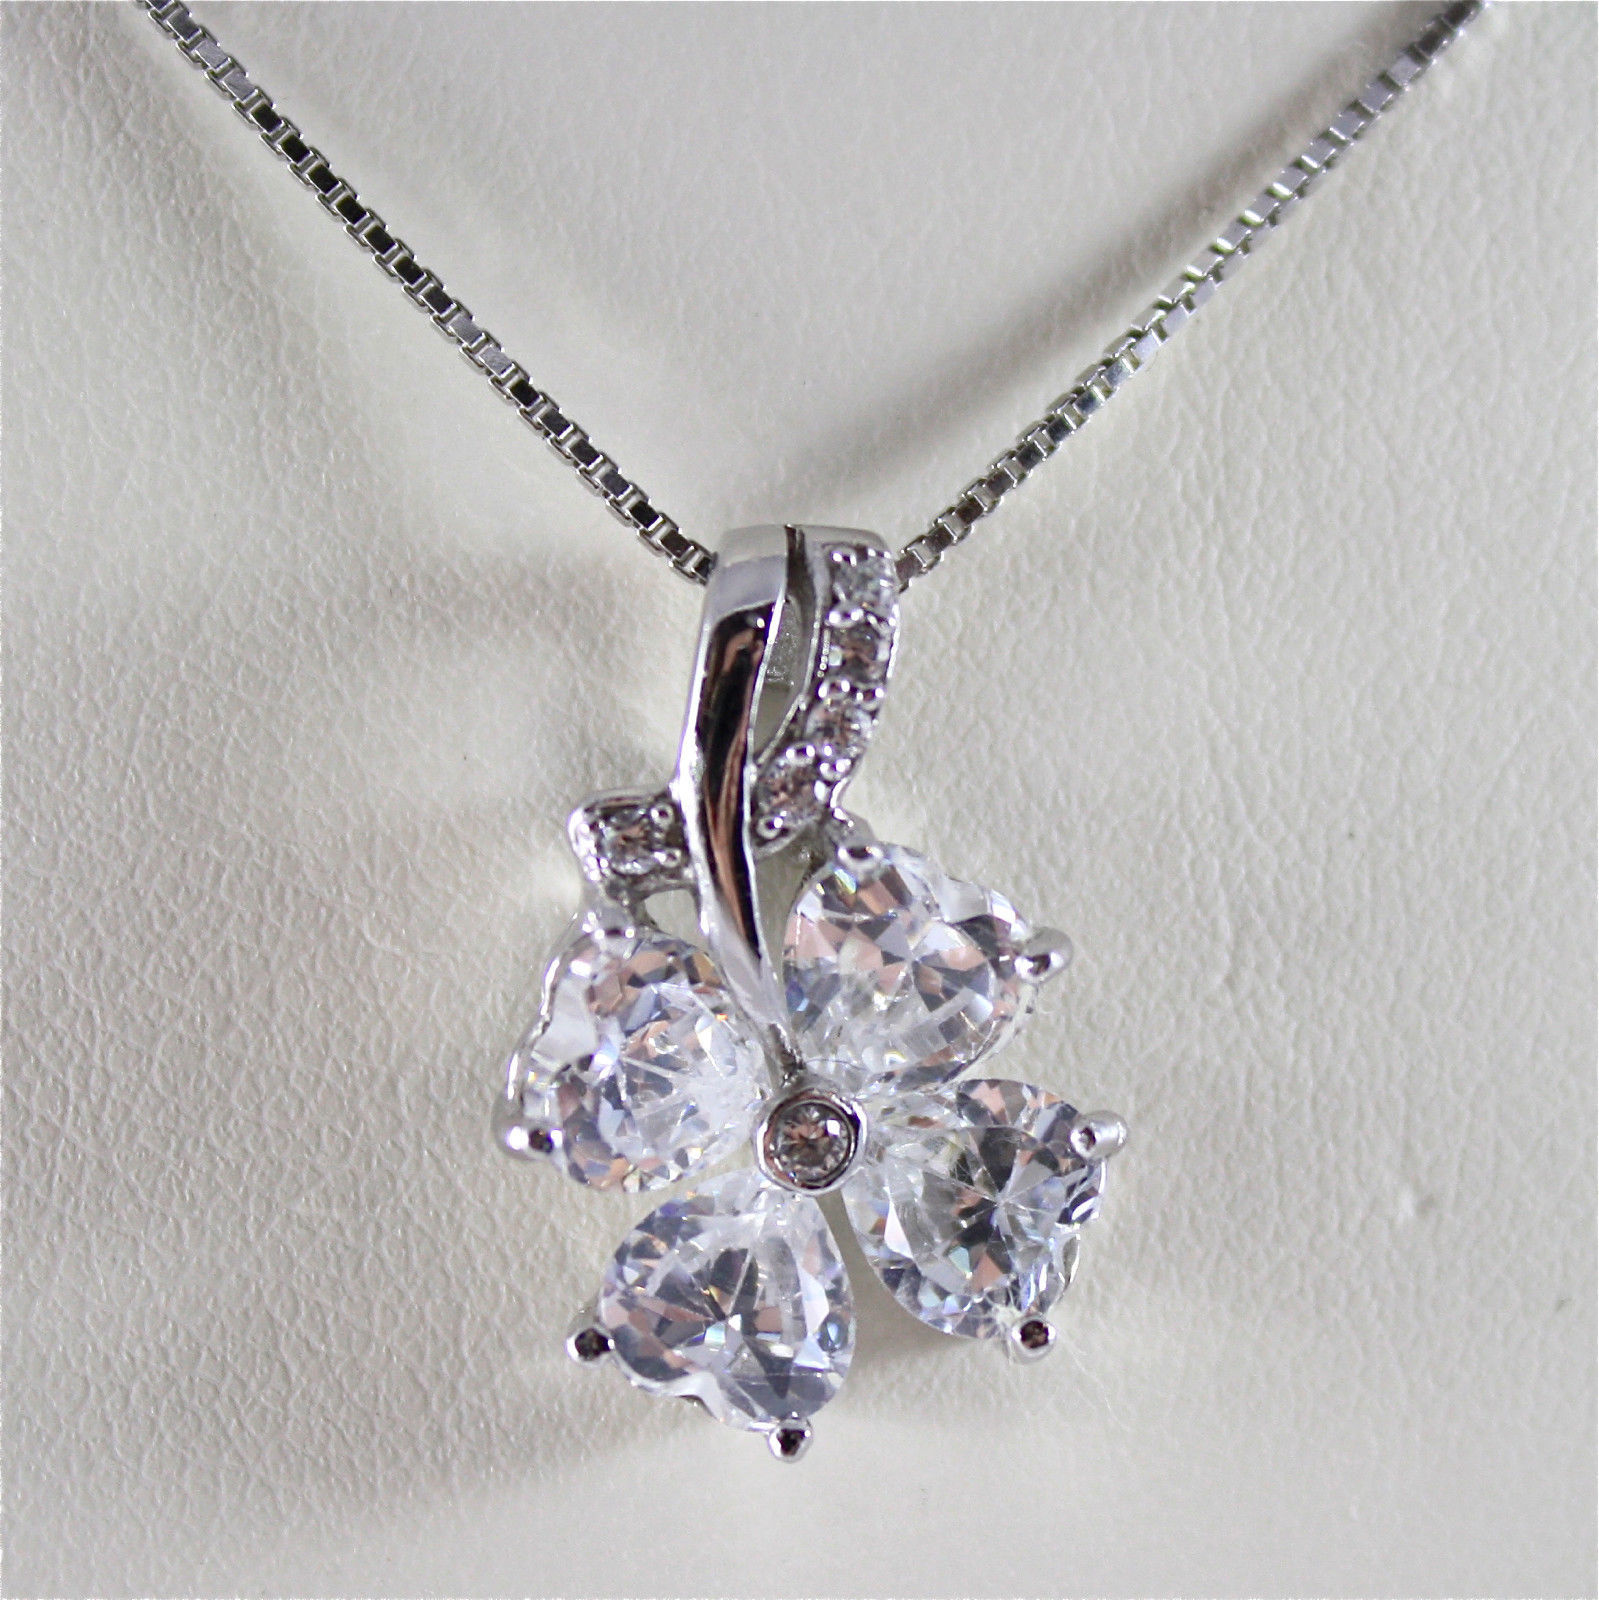 .925 RHODIUM SILVER NECKLACE, LUCKY FOUR-LEAF CLOVER, FACETED ZIRCONIA